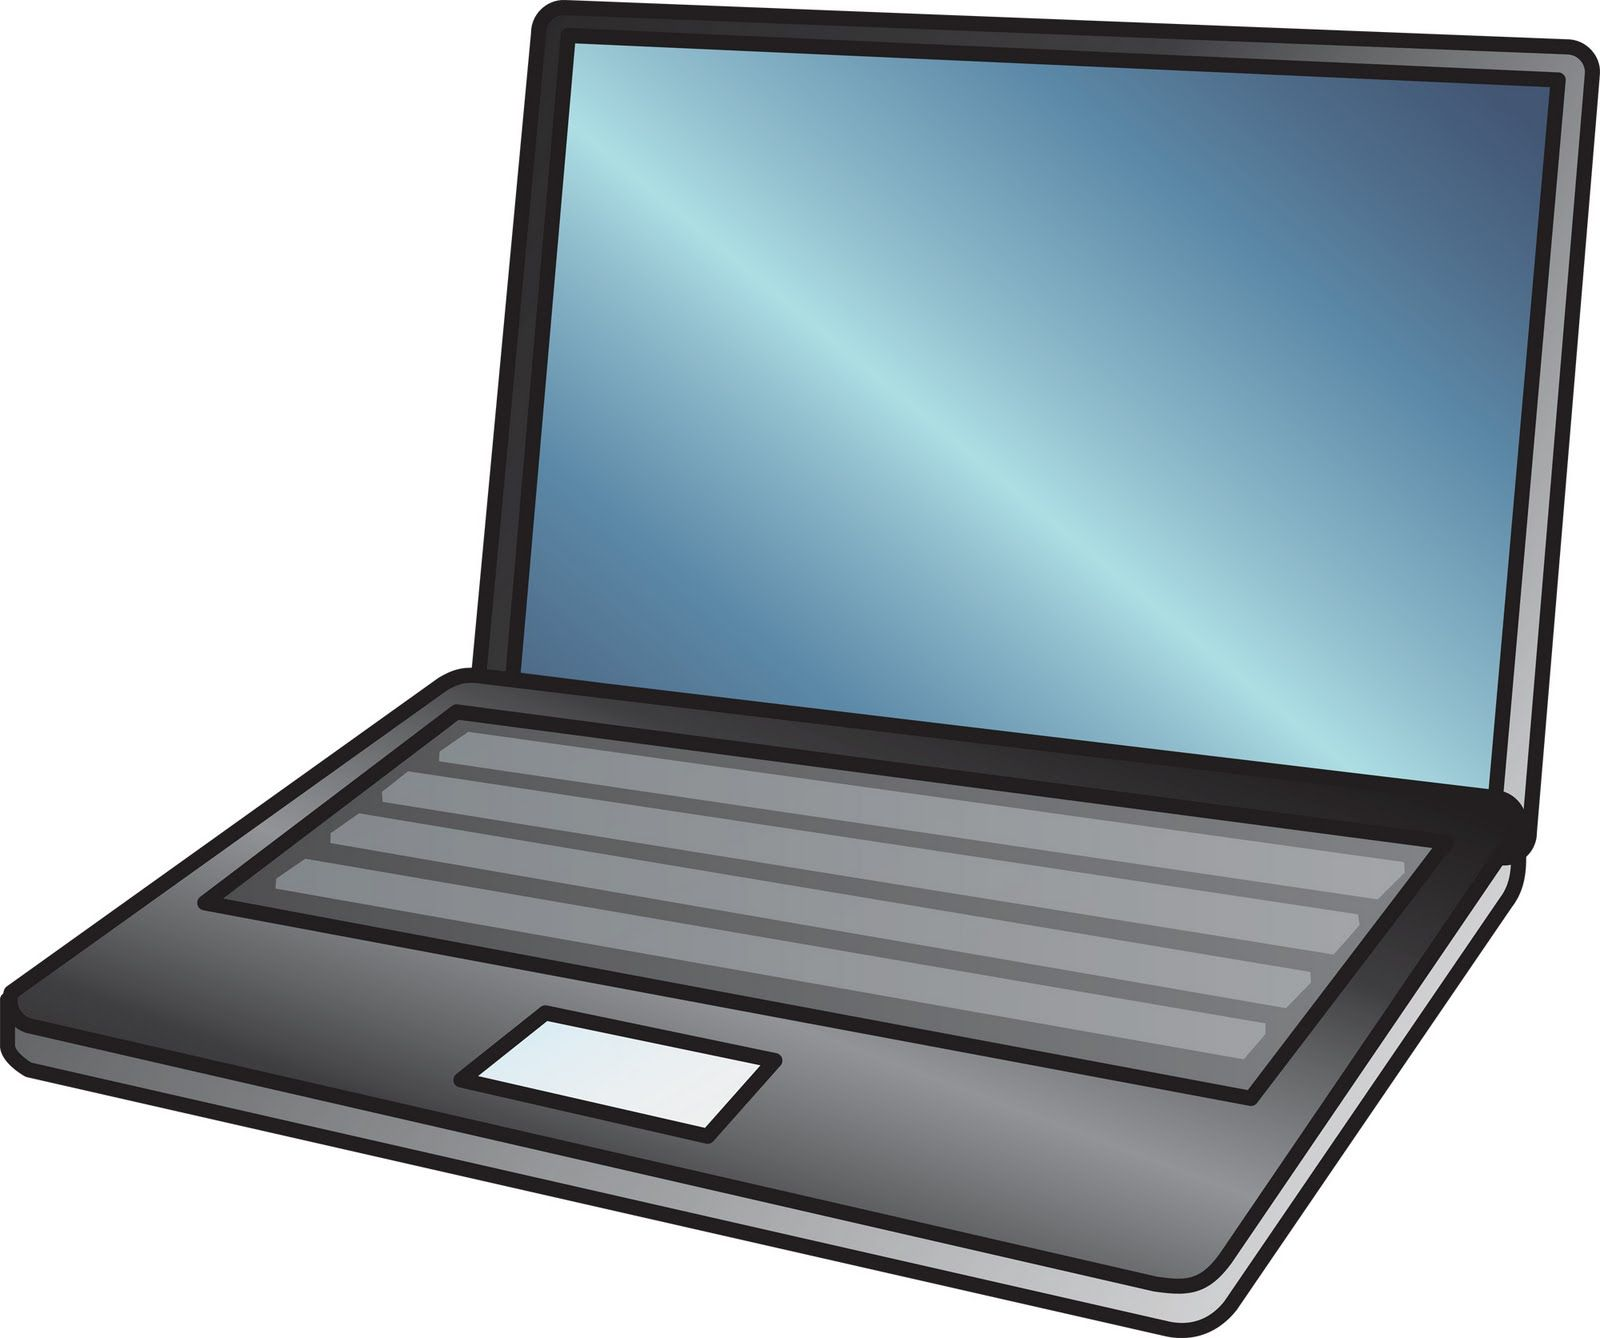 Cartoon Laptop Computer Clip Art I love the look of this..